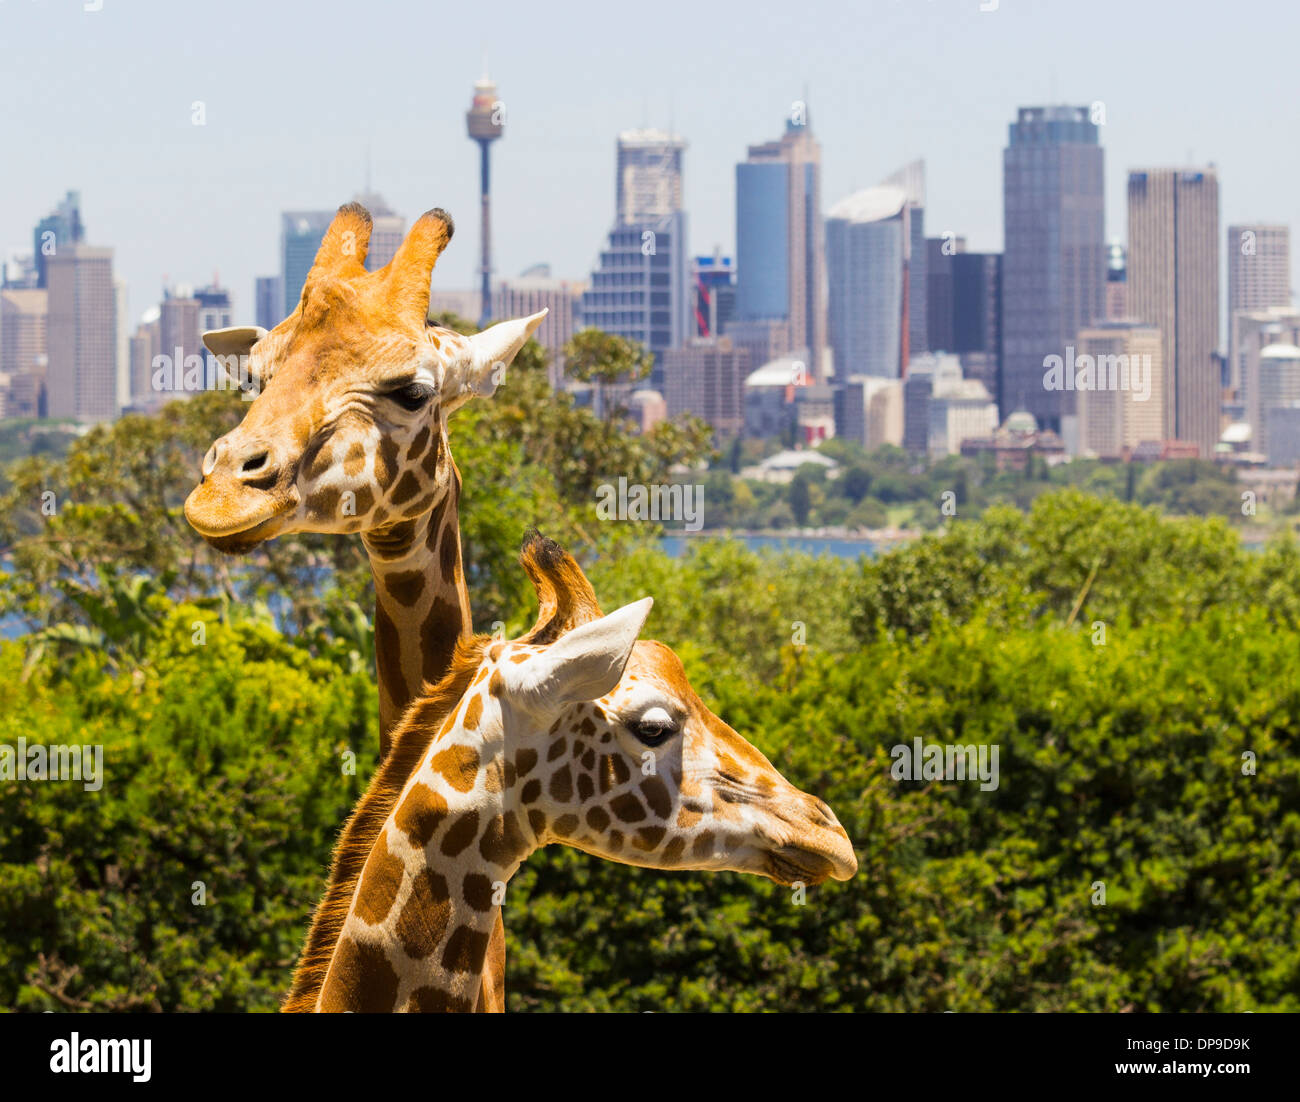 Giraffes in Taronga Zoo, Sydney, Australia with the city behind - Stock Image